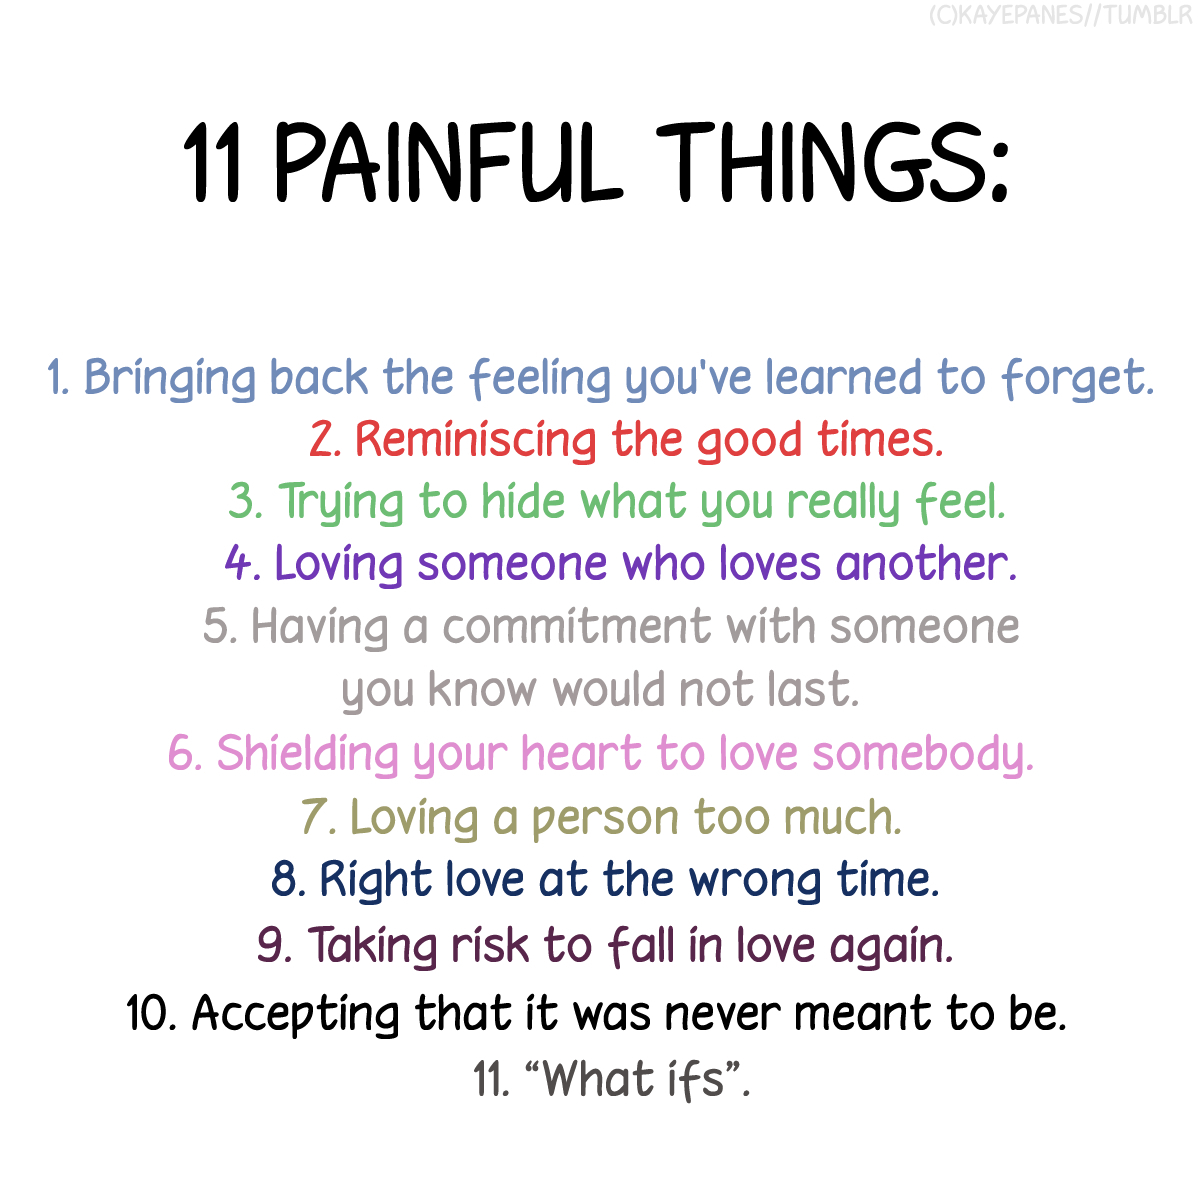 Quotes About Painful Love Famous Valentines Day Quotes In French Painful Love Quotes Famous